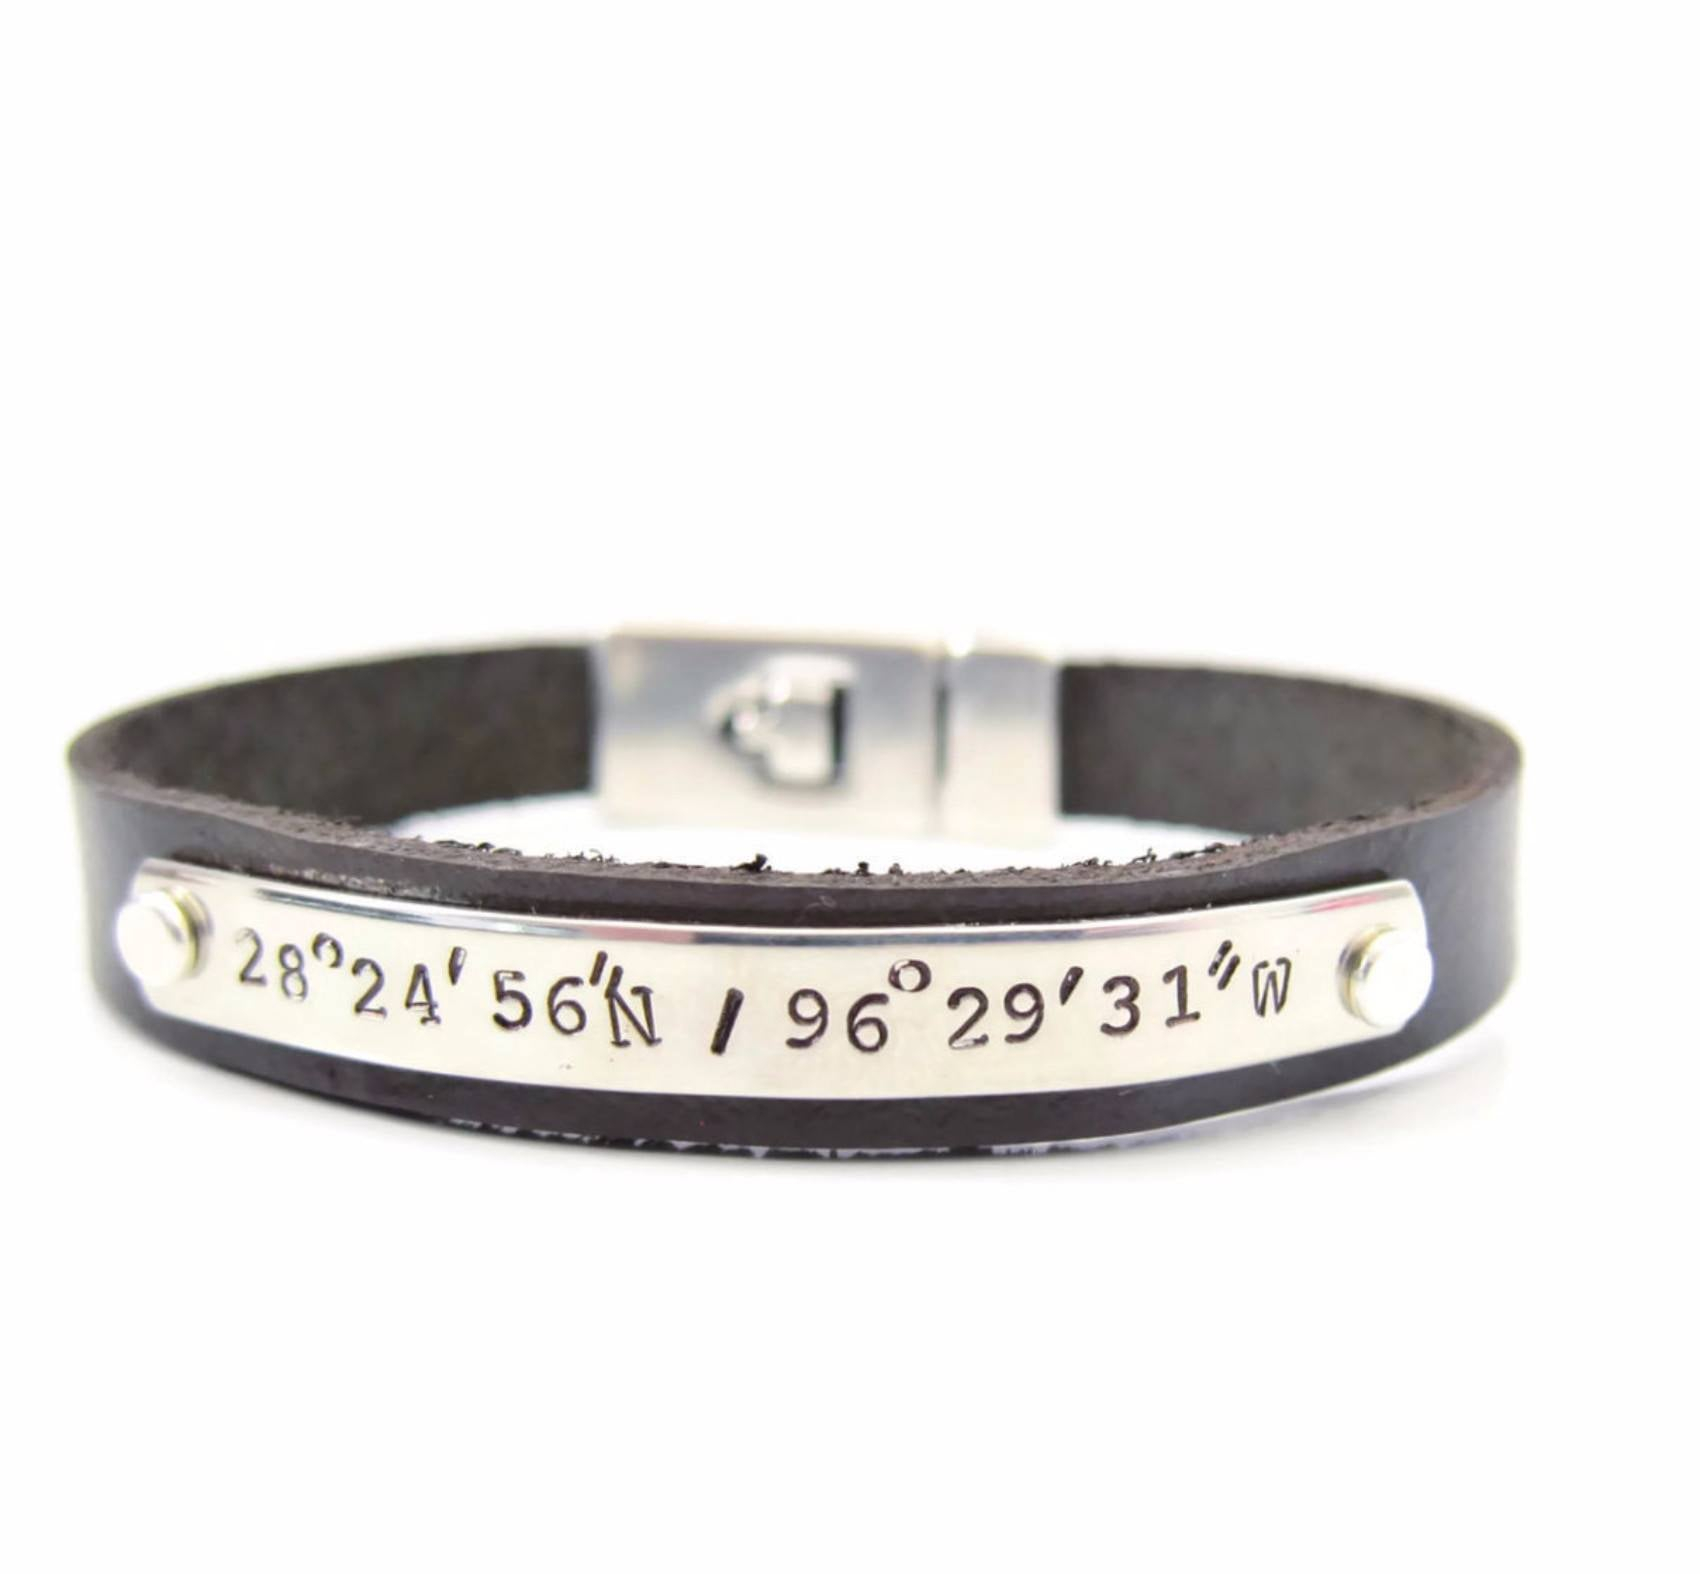 bracelet copy long personalized the modern custom lat coordinate bazaar products of silver leather